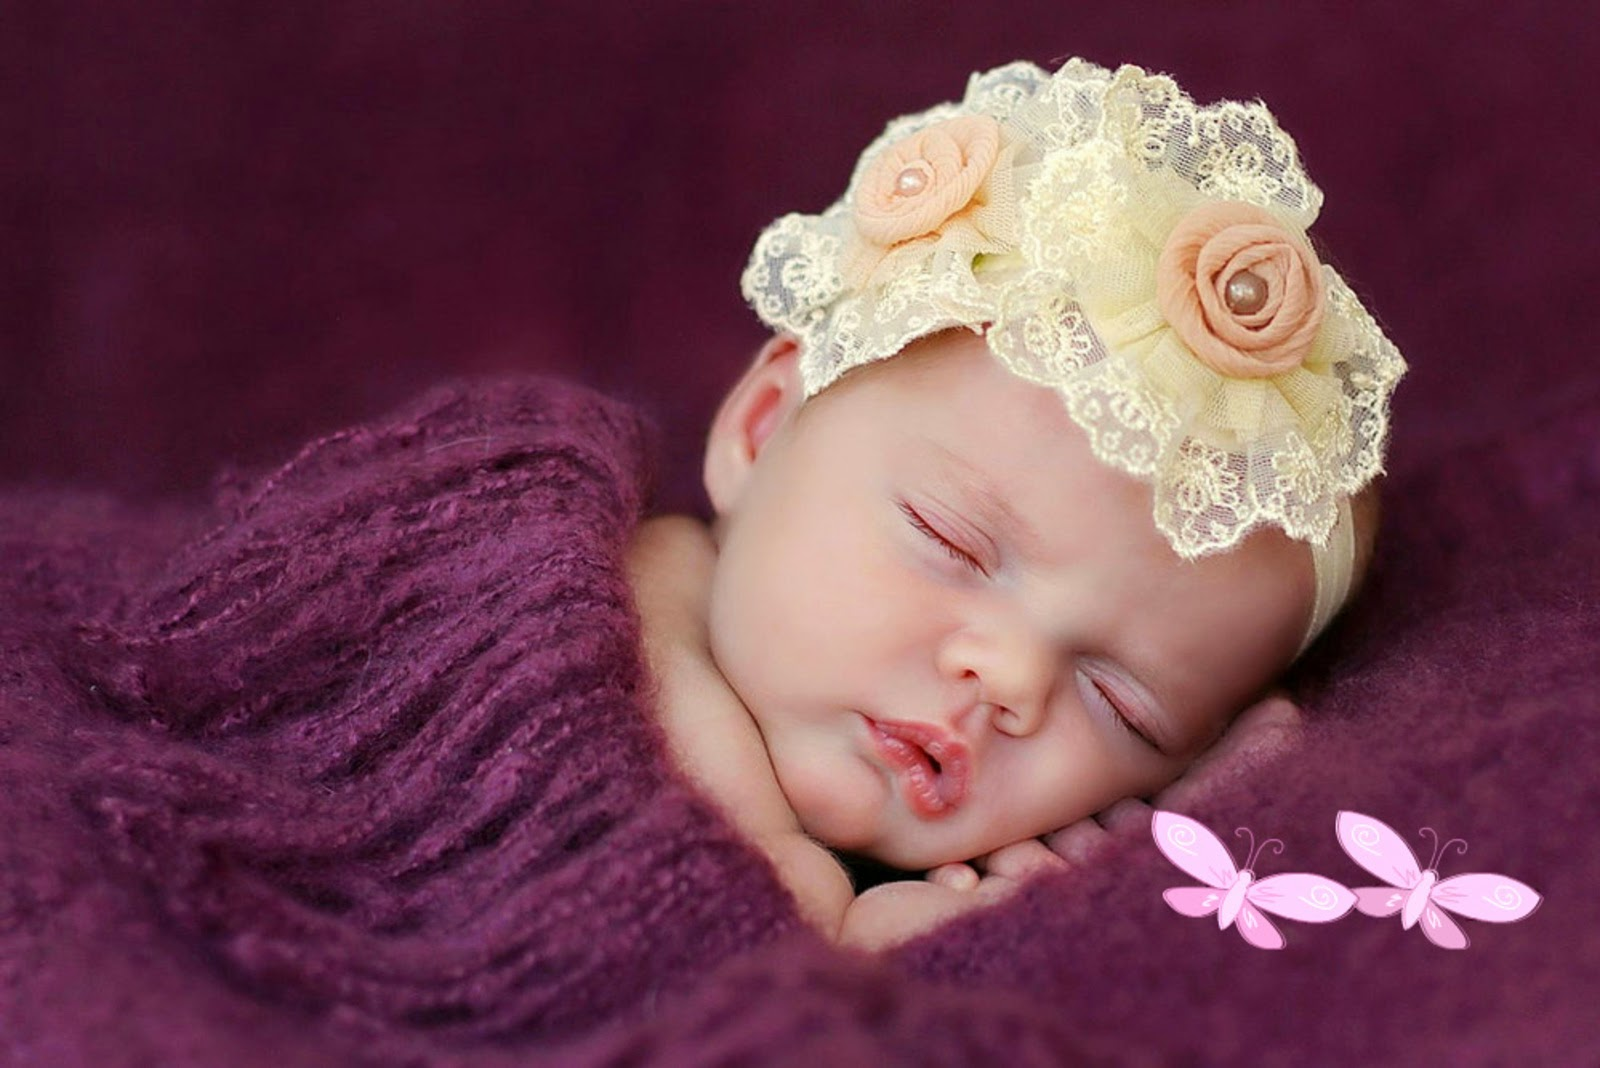 Baby-sleeping-images-editable-for-quotes-poems-greetings-wishes.jpg